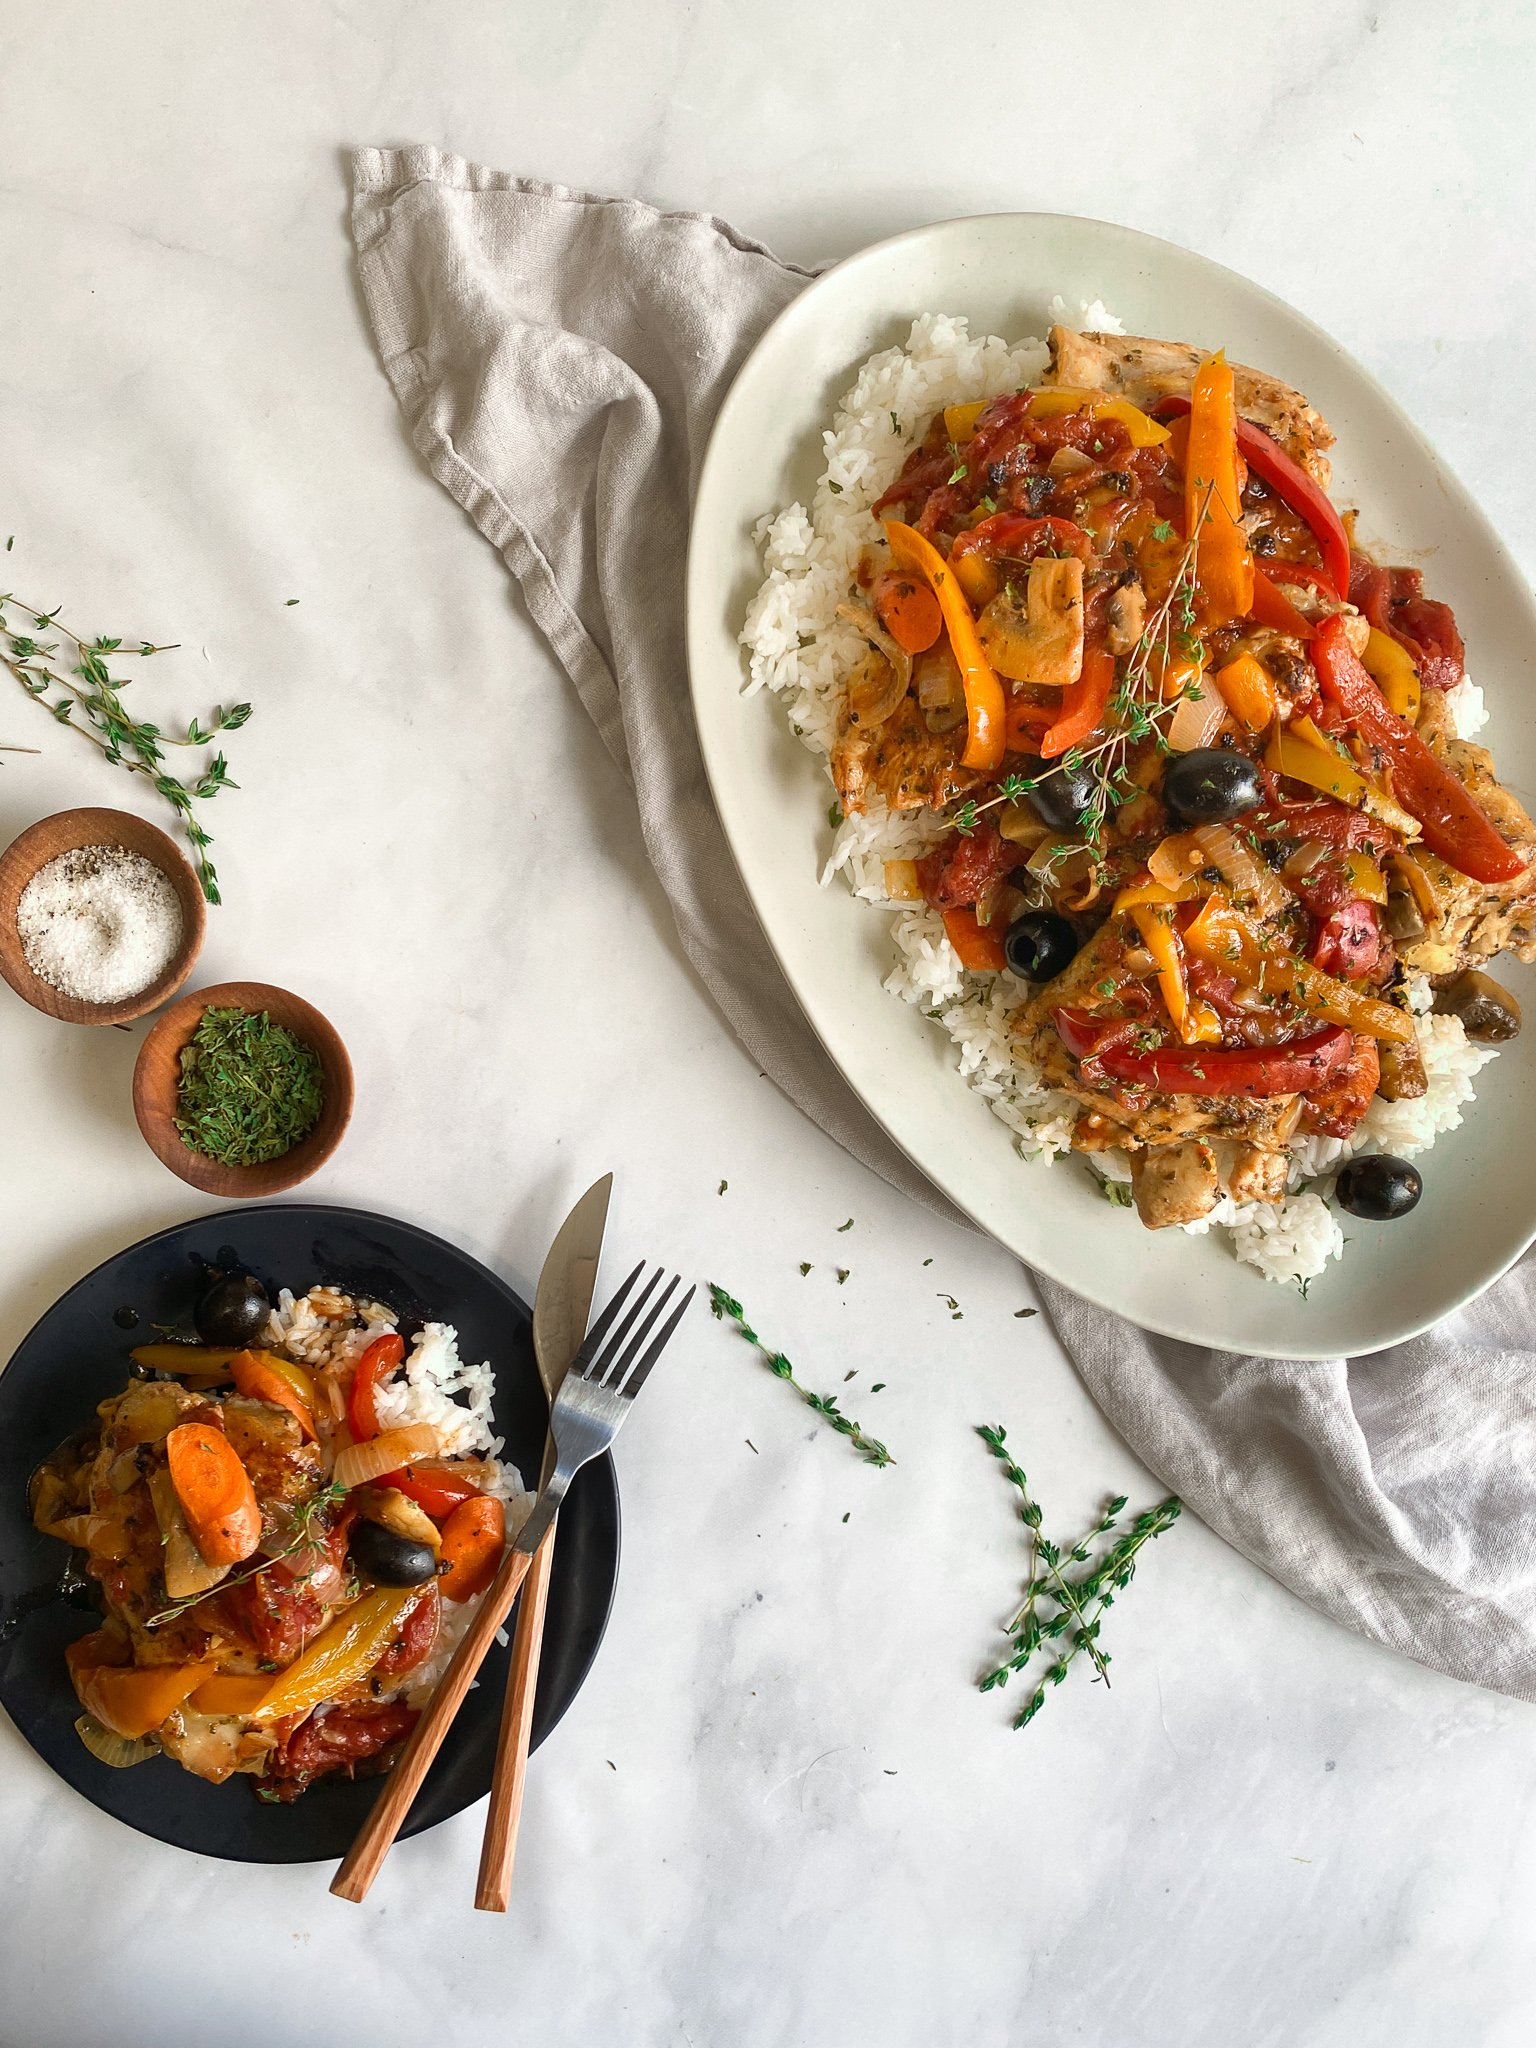 Classic chicken cacciatore with bell peppers, mushrooms, onions, carrots, garlic, Kalamata olives and crush tomatoes were simmered in together with chicken thighs until they are fall off the bone tender. They are being served over a bead of jasmine rice on a grey platter and a black plate with extra parsley on the side.